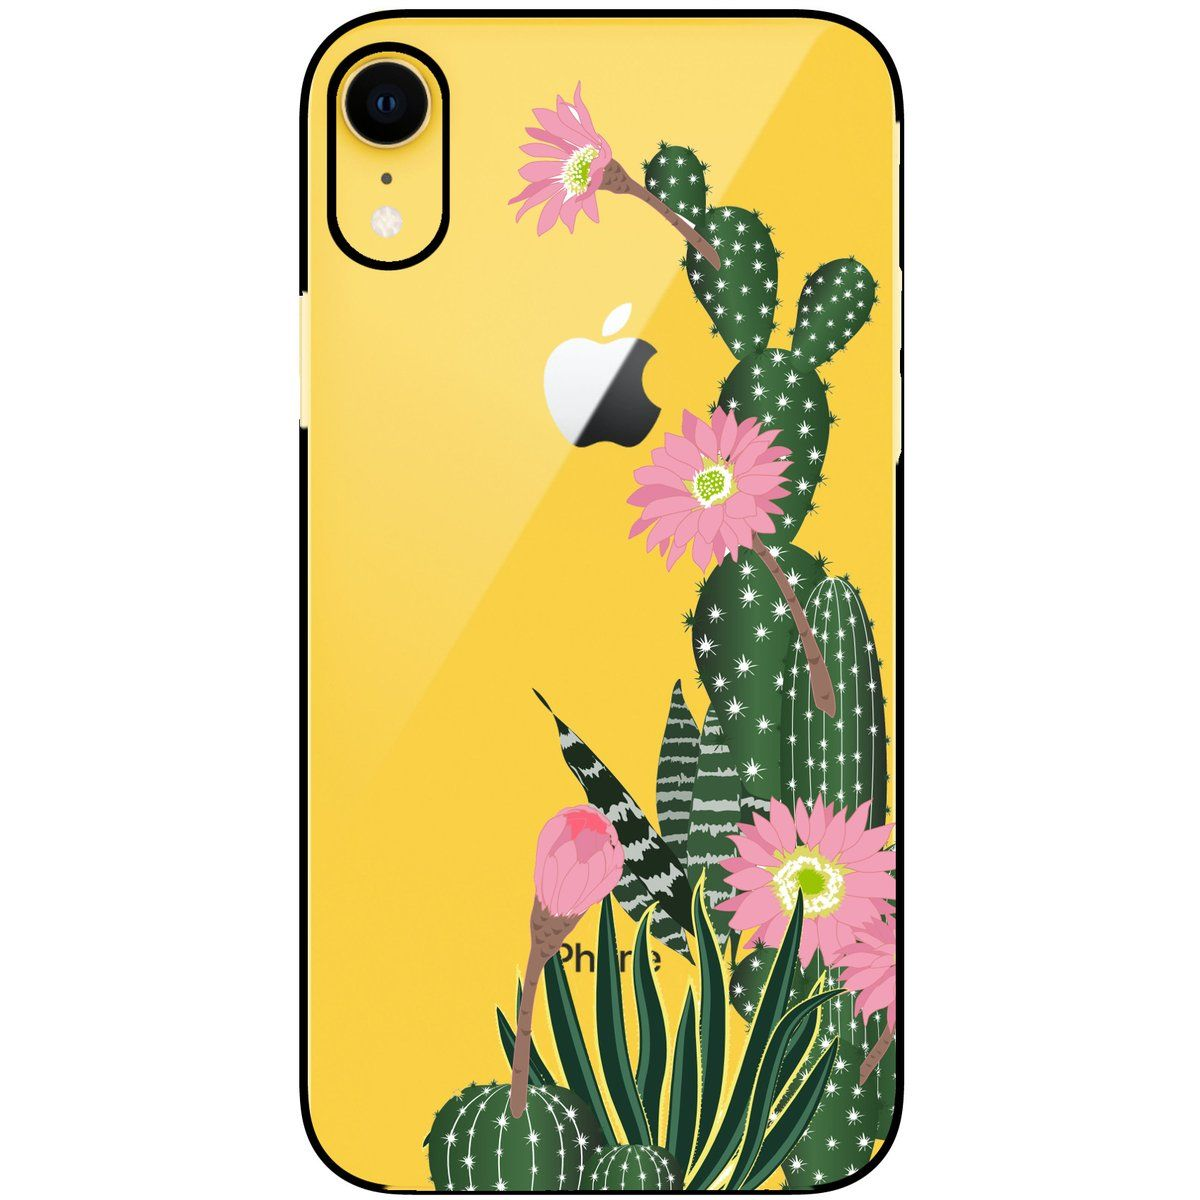 iPhone XR Case Desert Blossom (With images) Iphone